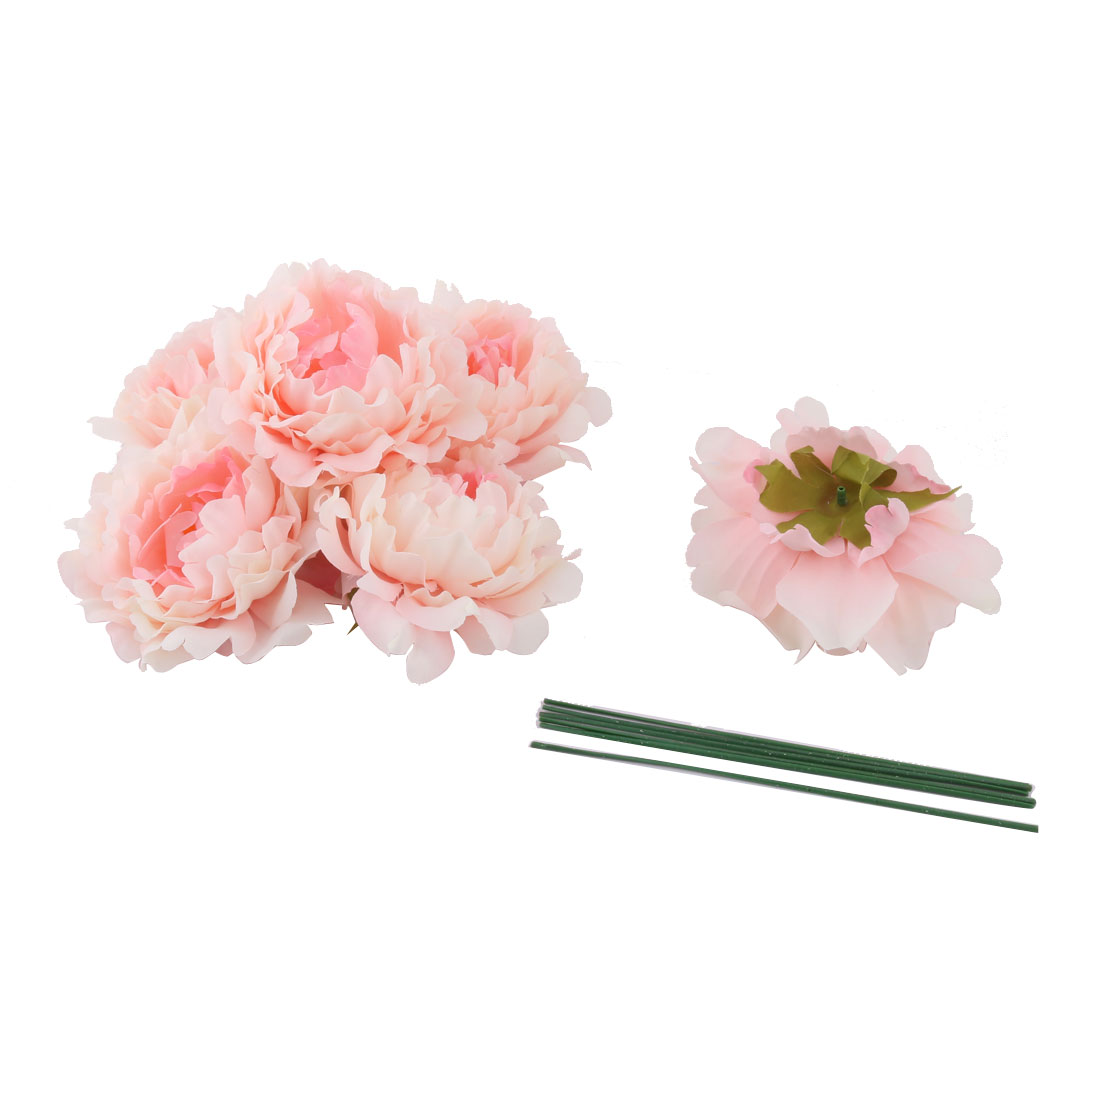 Household Party Fabric Handicraft DIY Decoration Artificial Flower Heads Pink 6 Pcs